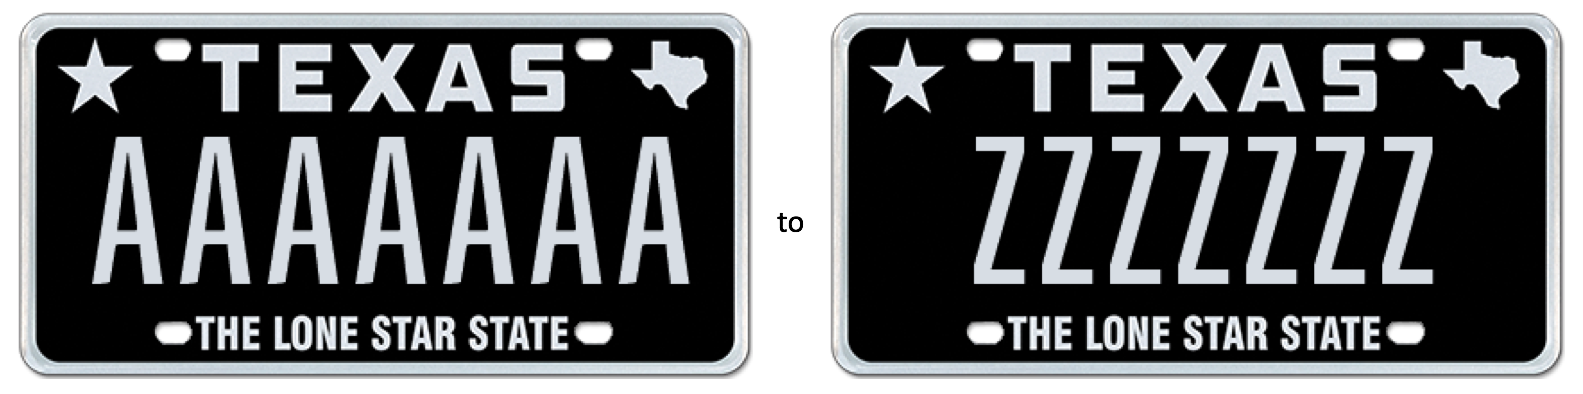 my plates to auction 23 seven letter texas sequential license plate messages. Black Bedroom Furniture Sets. Home Design Ideas